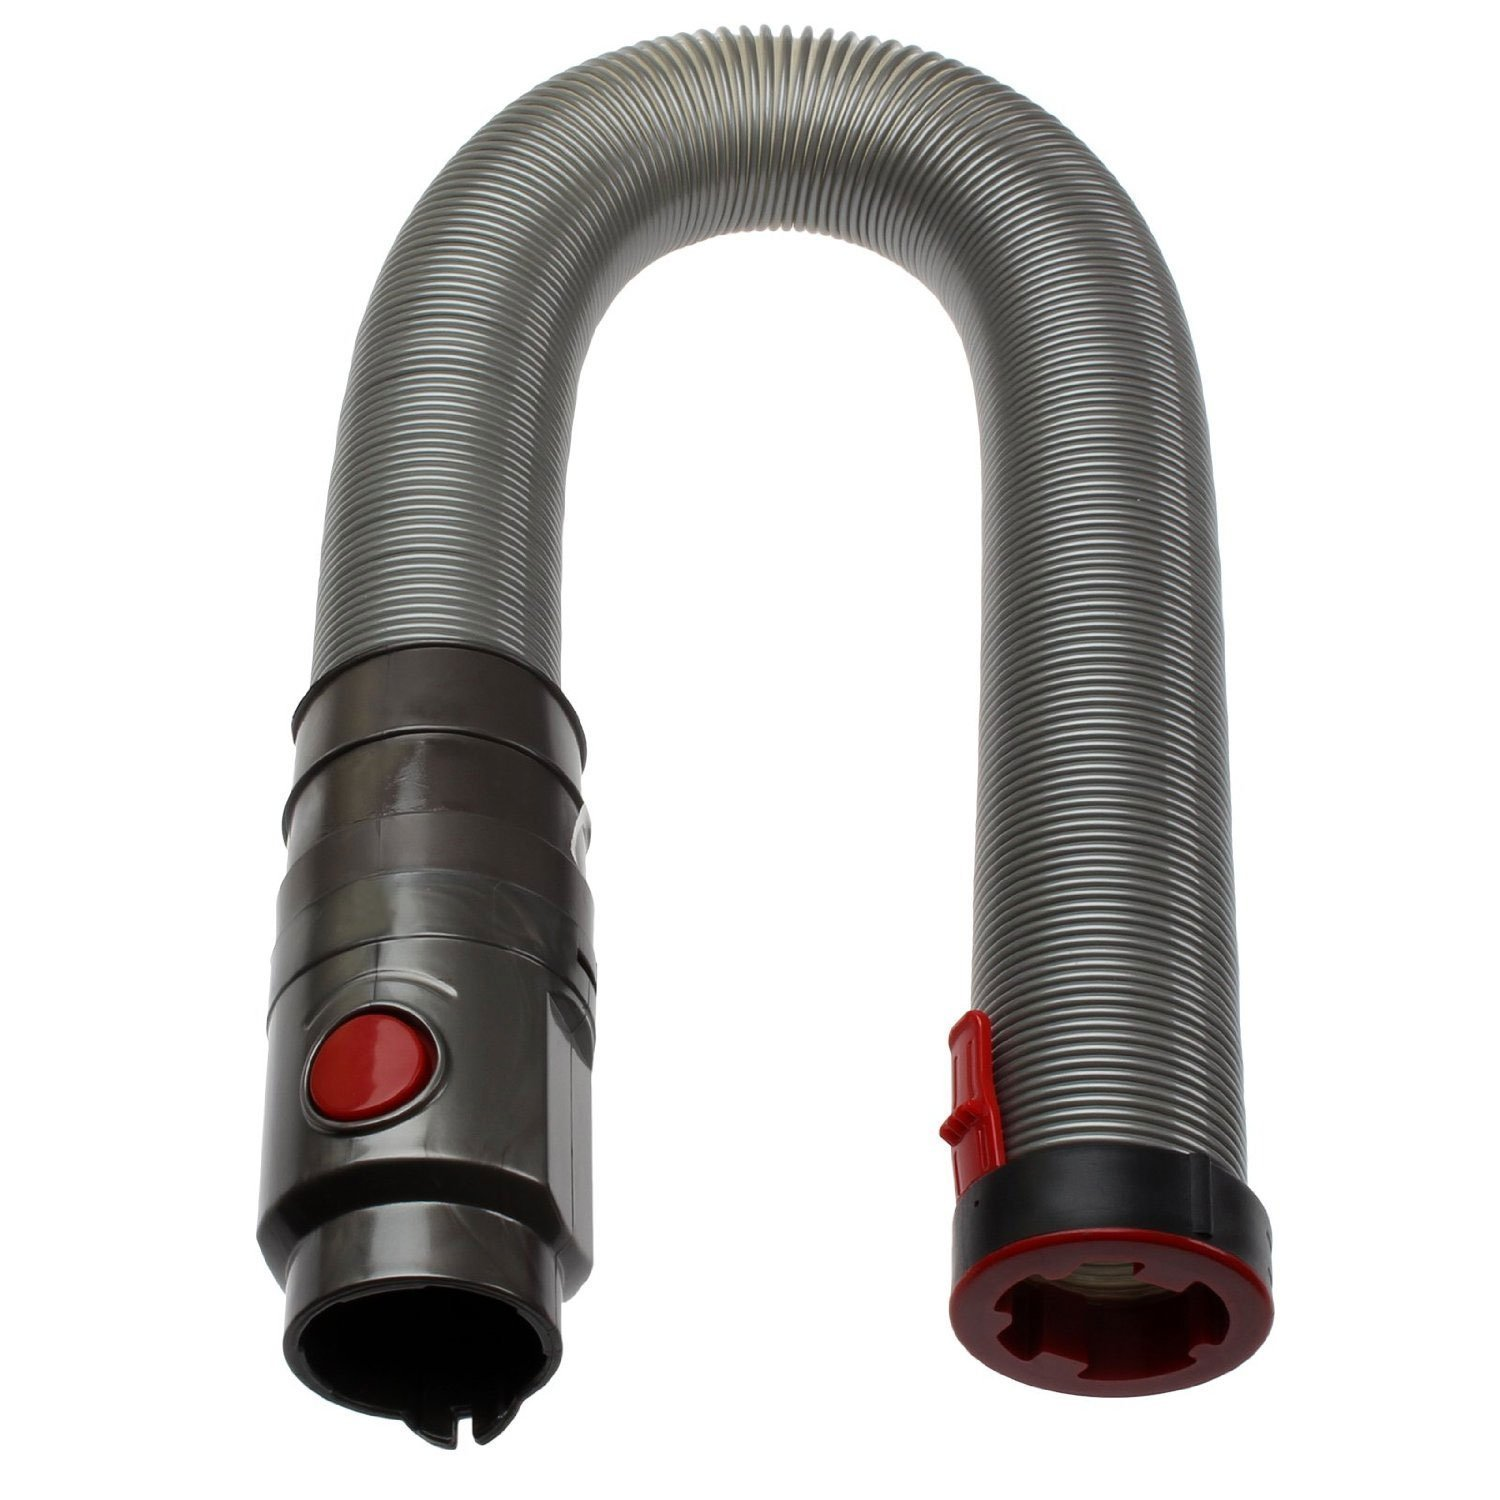 Dyson Dc40 Dc40I Animal Multi Floor Vacuum Cleaner Hose Assembly by Dyson